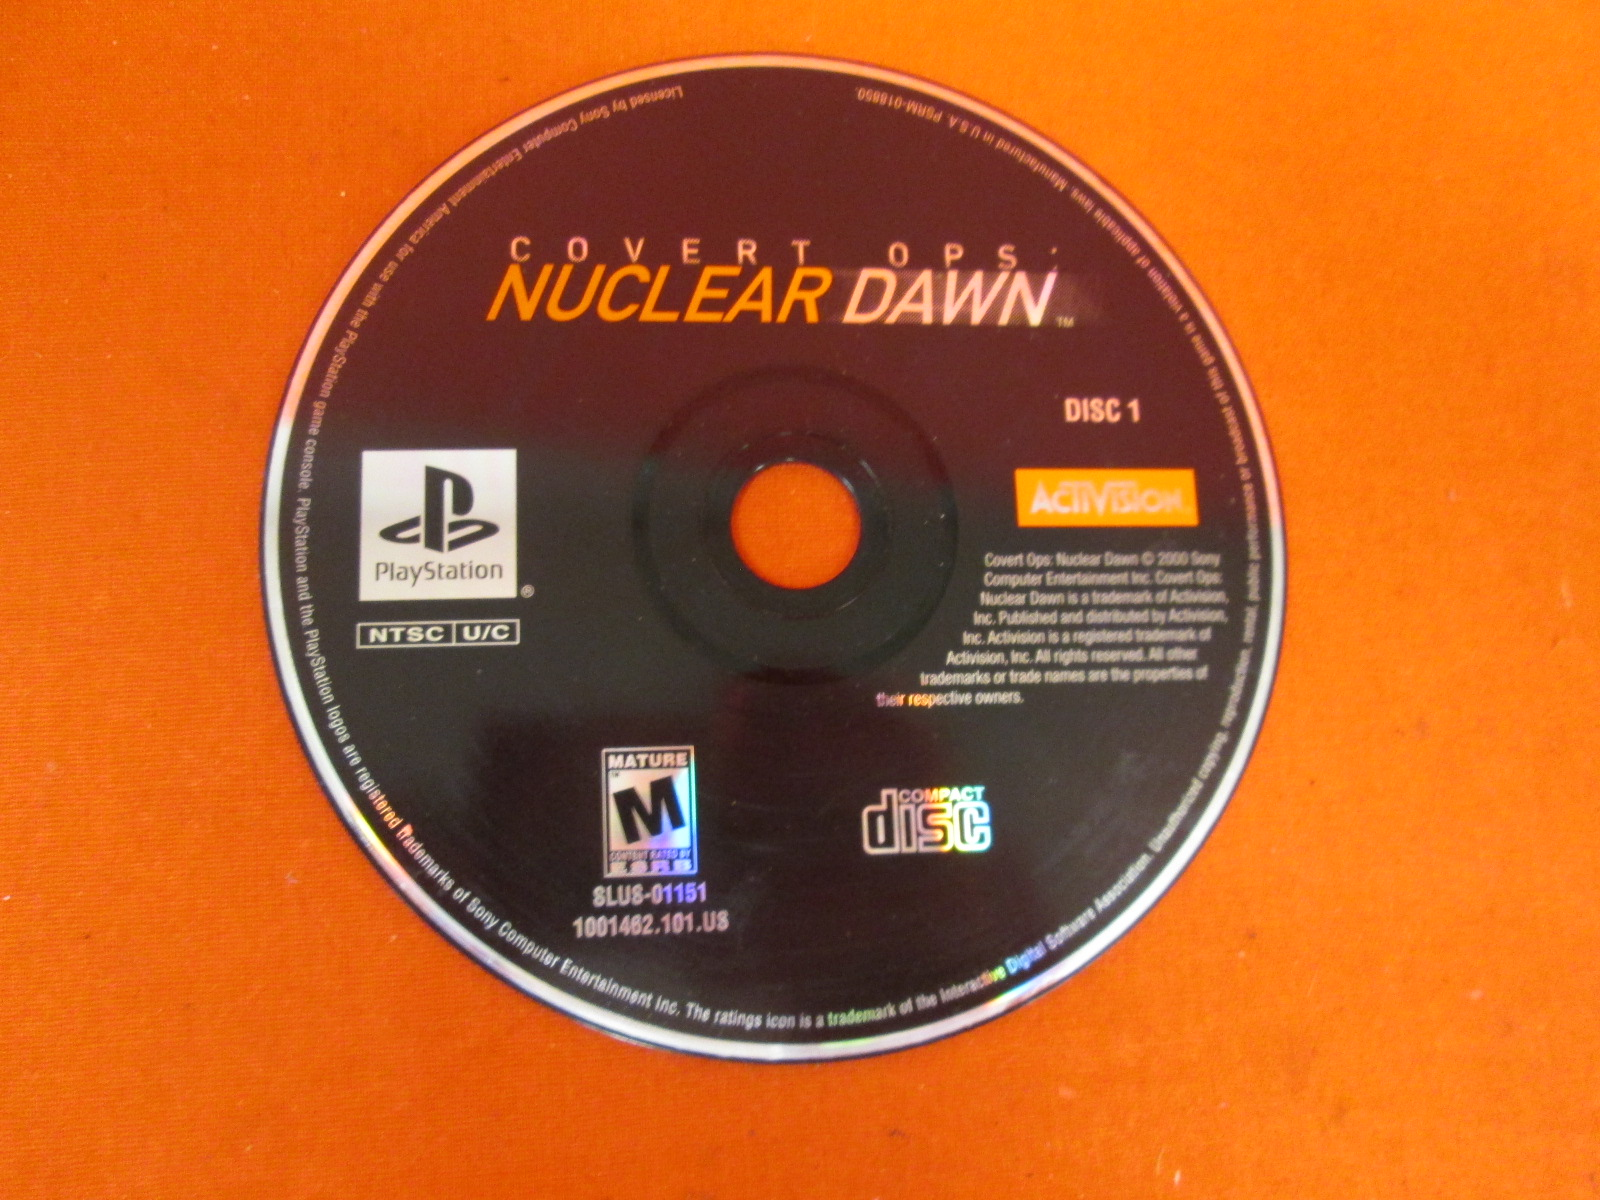 Replacement Disc 1 For Covert Ops: Nuclear Dawn For PlayStation 1